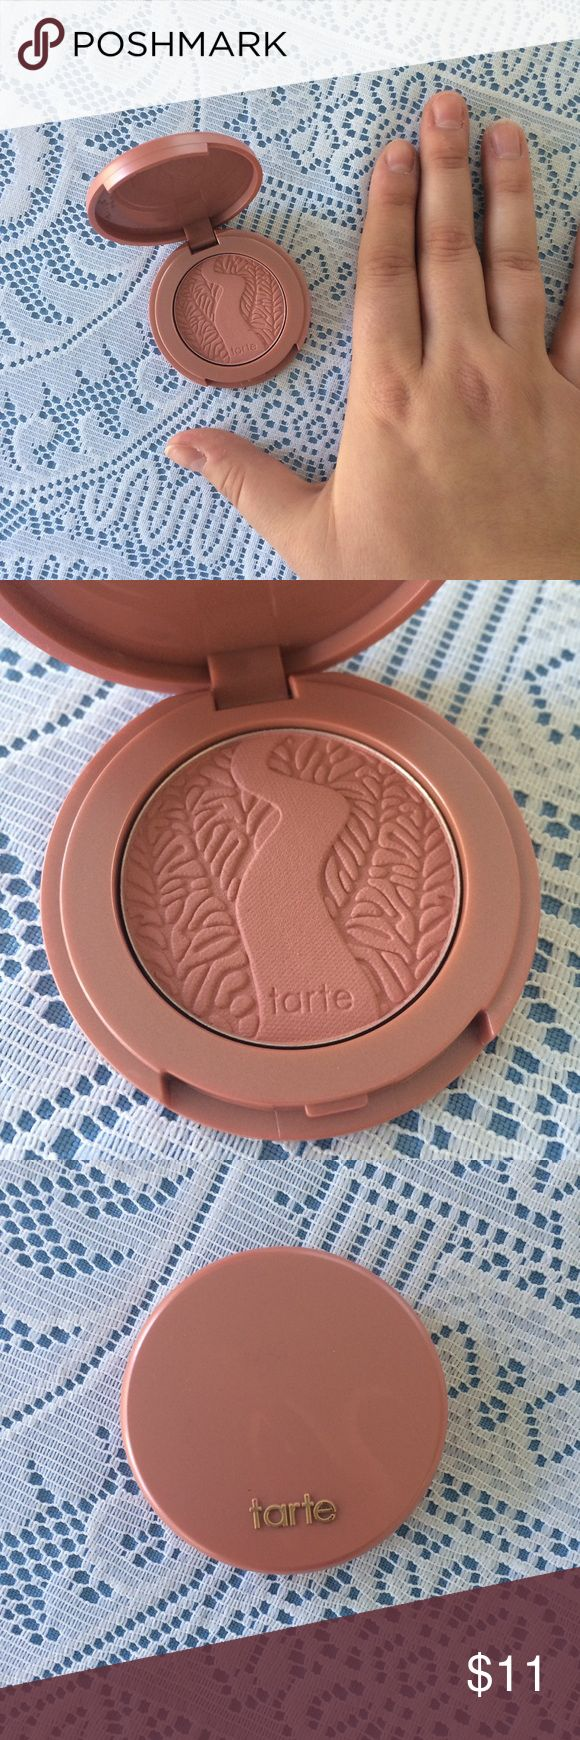 """⬇️💸NWOT Tarte MINI Amazonian Blush in """"Paaarty"""" ⬇️💸10% DECREASED💸⬇️ NWOT Tarte MINI 12 Hour Amazonian Blush in """"Paaarty"""" 🎈 Soft nude-pink color. NEVER SWATCHED OR USED. Compact approx 2"""" x 2"""" and contains 1.5 g of product. Includes plastic film protector. Pic 4 courtesy of Avery Mae Beauty. Full size RTP $29. #tarteist #face #pigment #rosy #cosmetics #clay tarte Makeup Blush"""